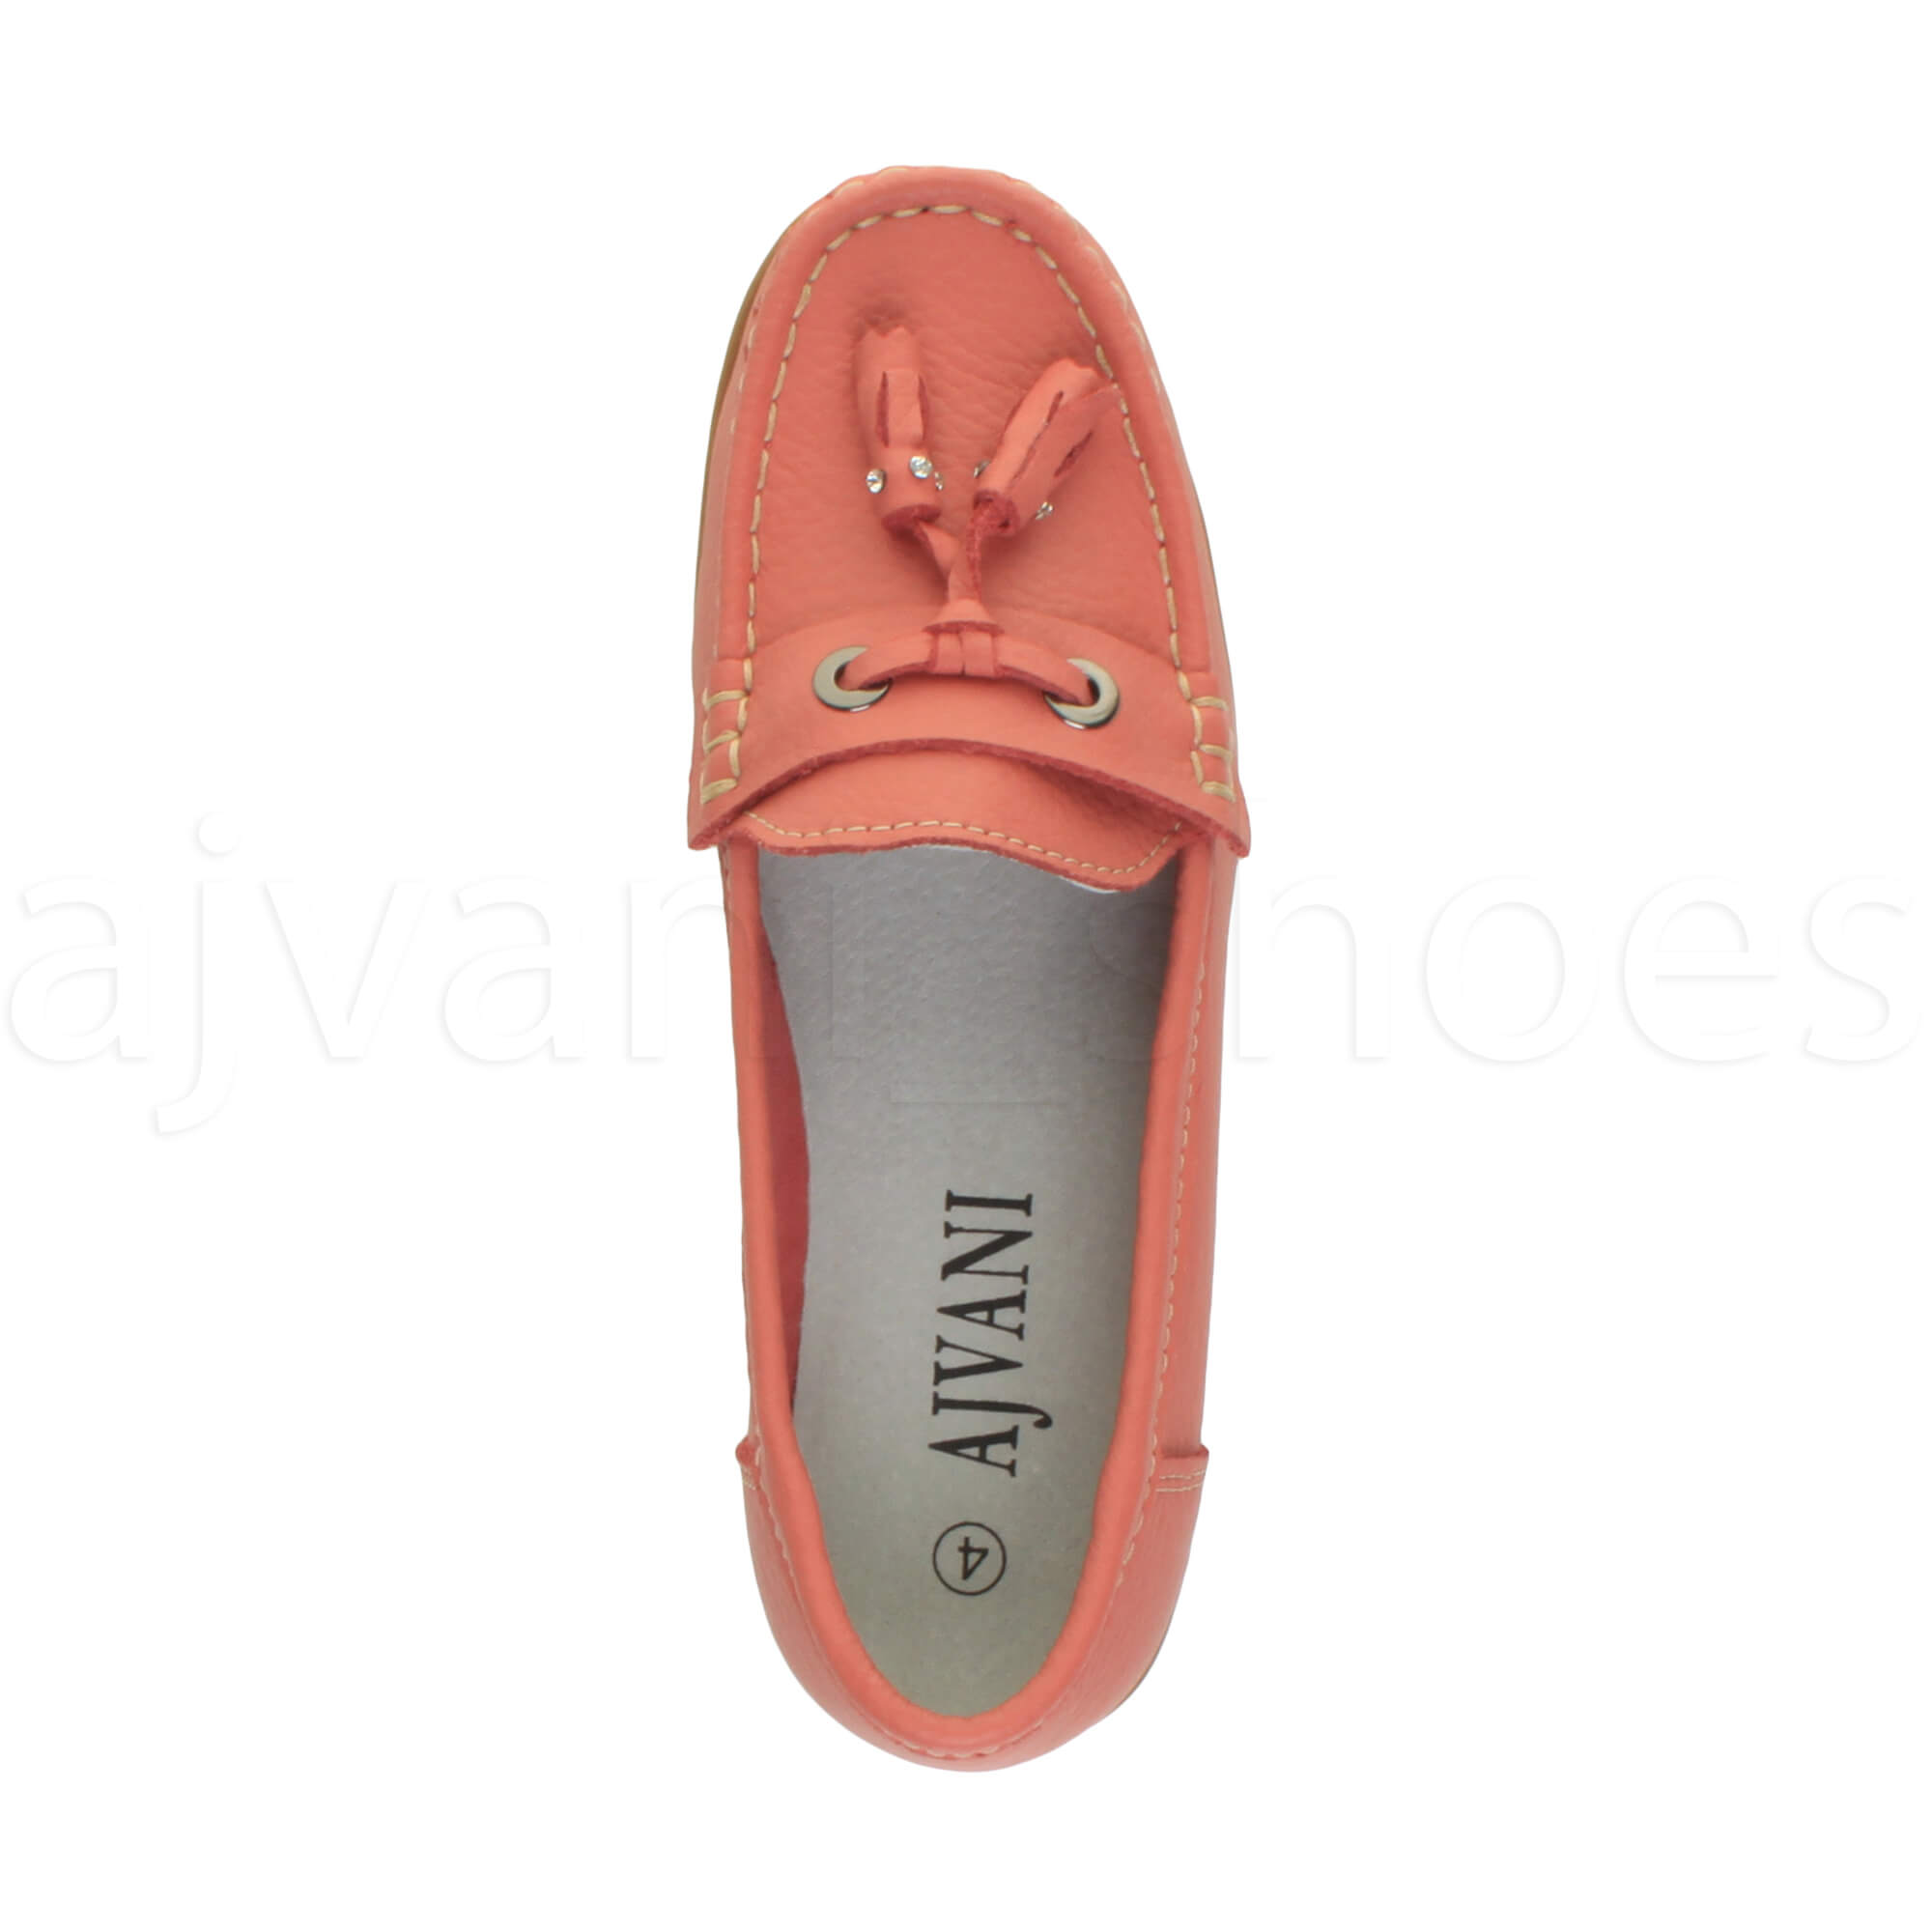 WOMENS-LADIES-LOW-HEEL-WEDGE-LEATHER-TASSEL-LOAFERS-COMFORT-MOCCASINS-SHOES-SIZE thumbnail 32